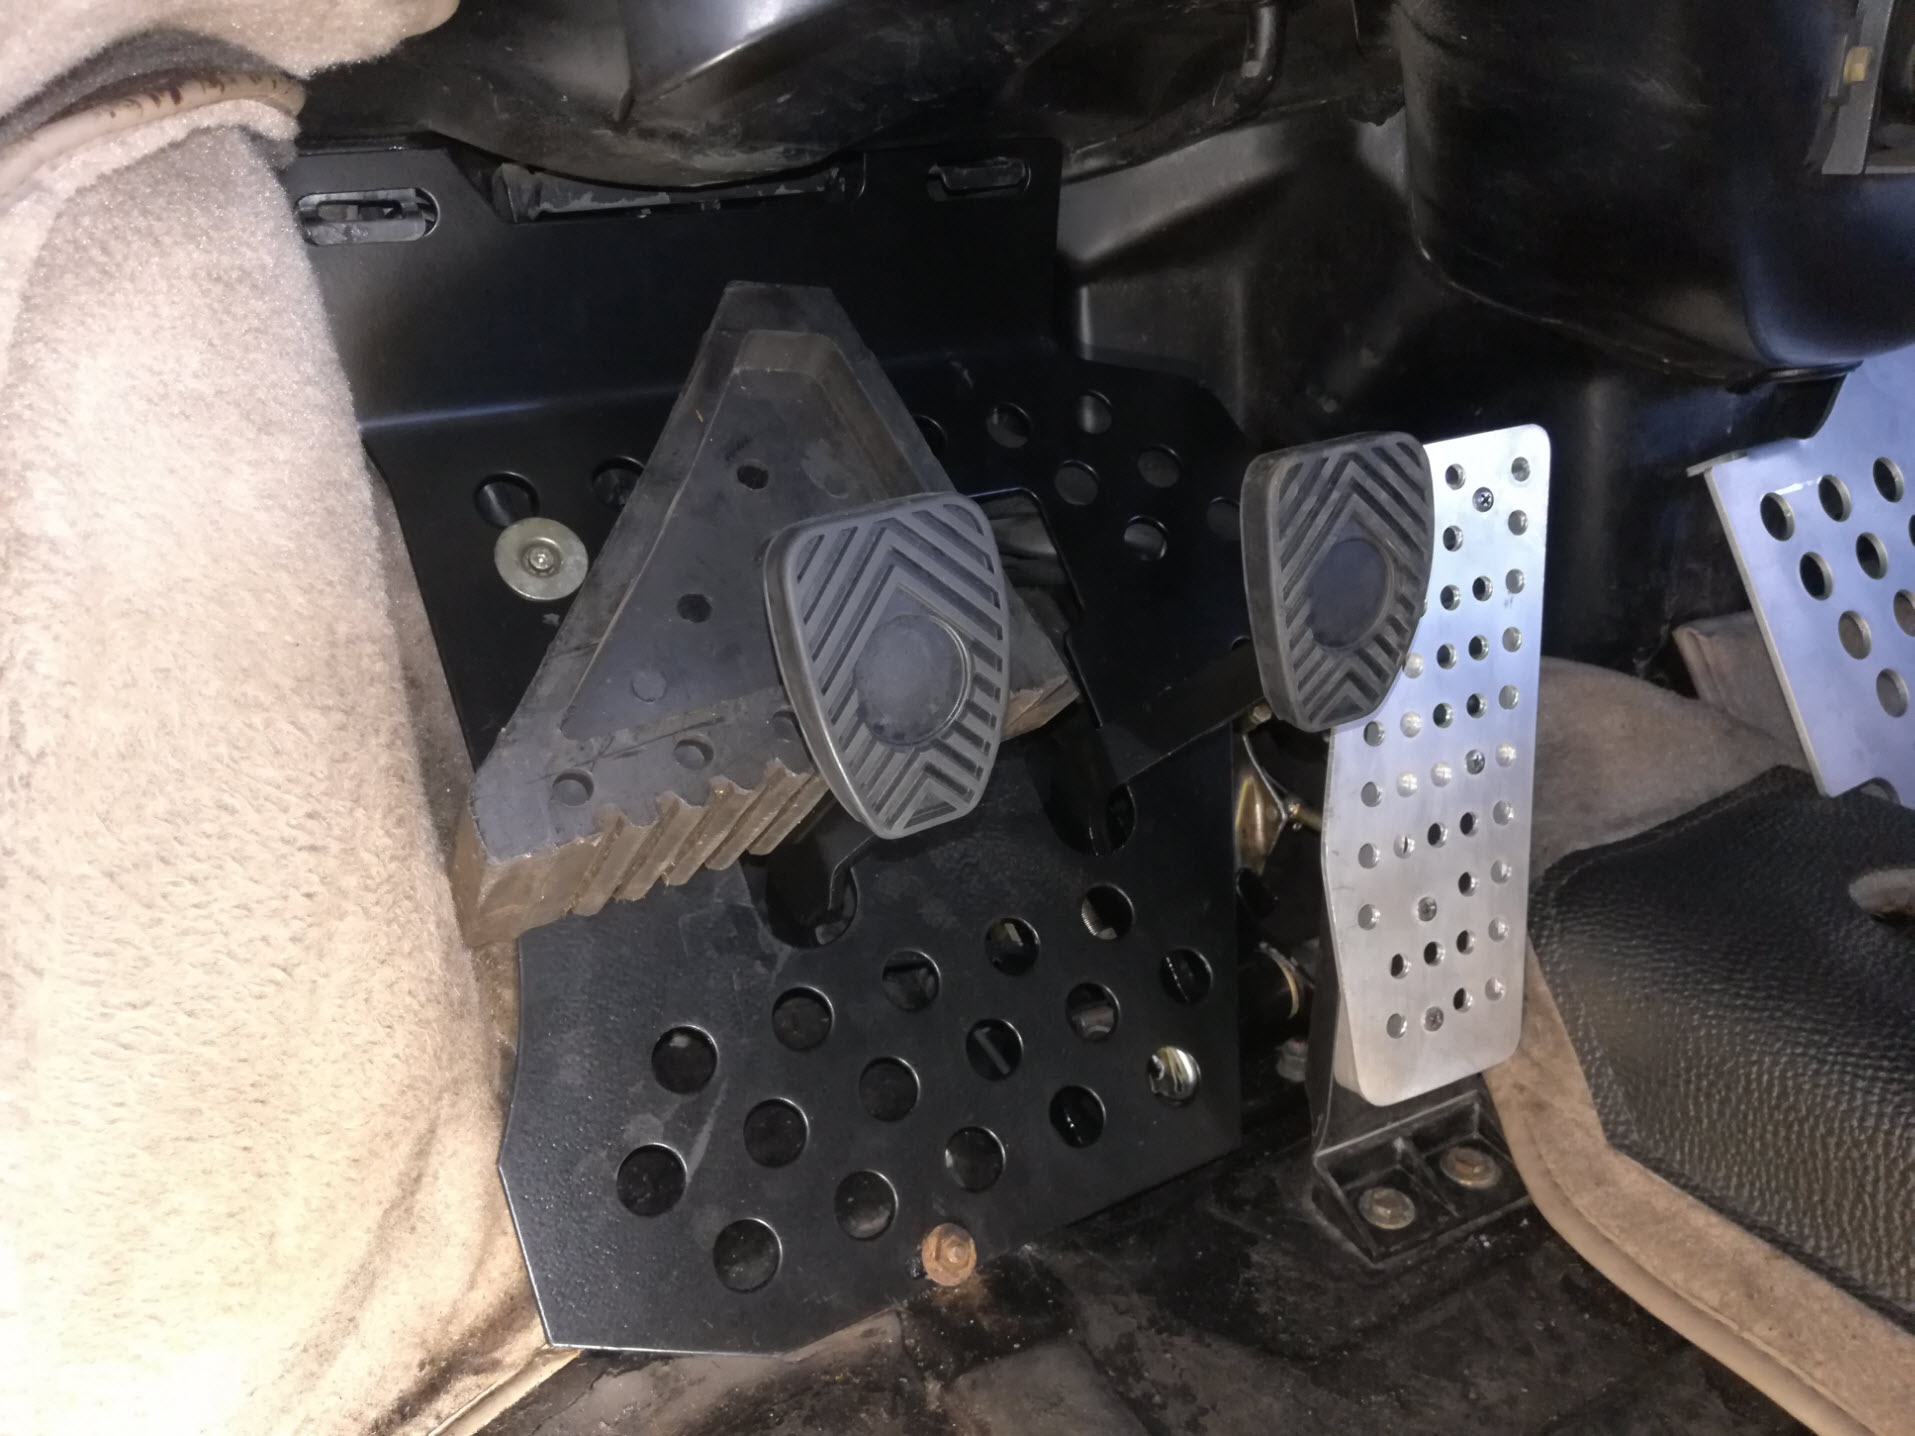 Air-cooled Porsche 911 clutch pedal chock for extra cable slack.